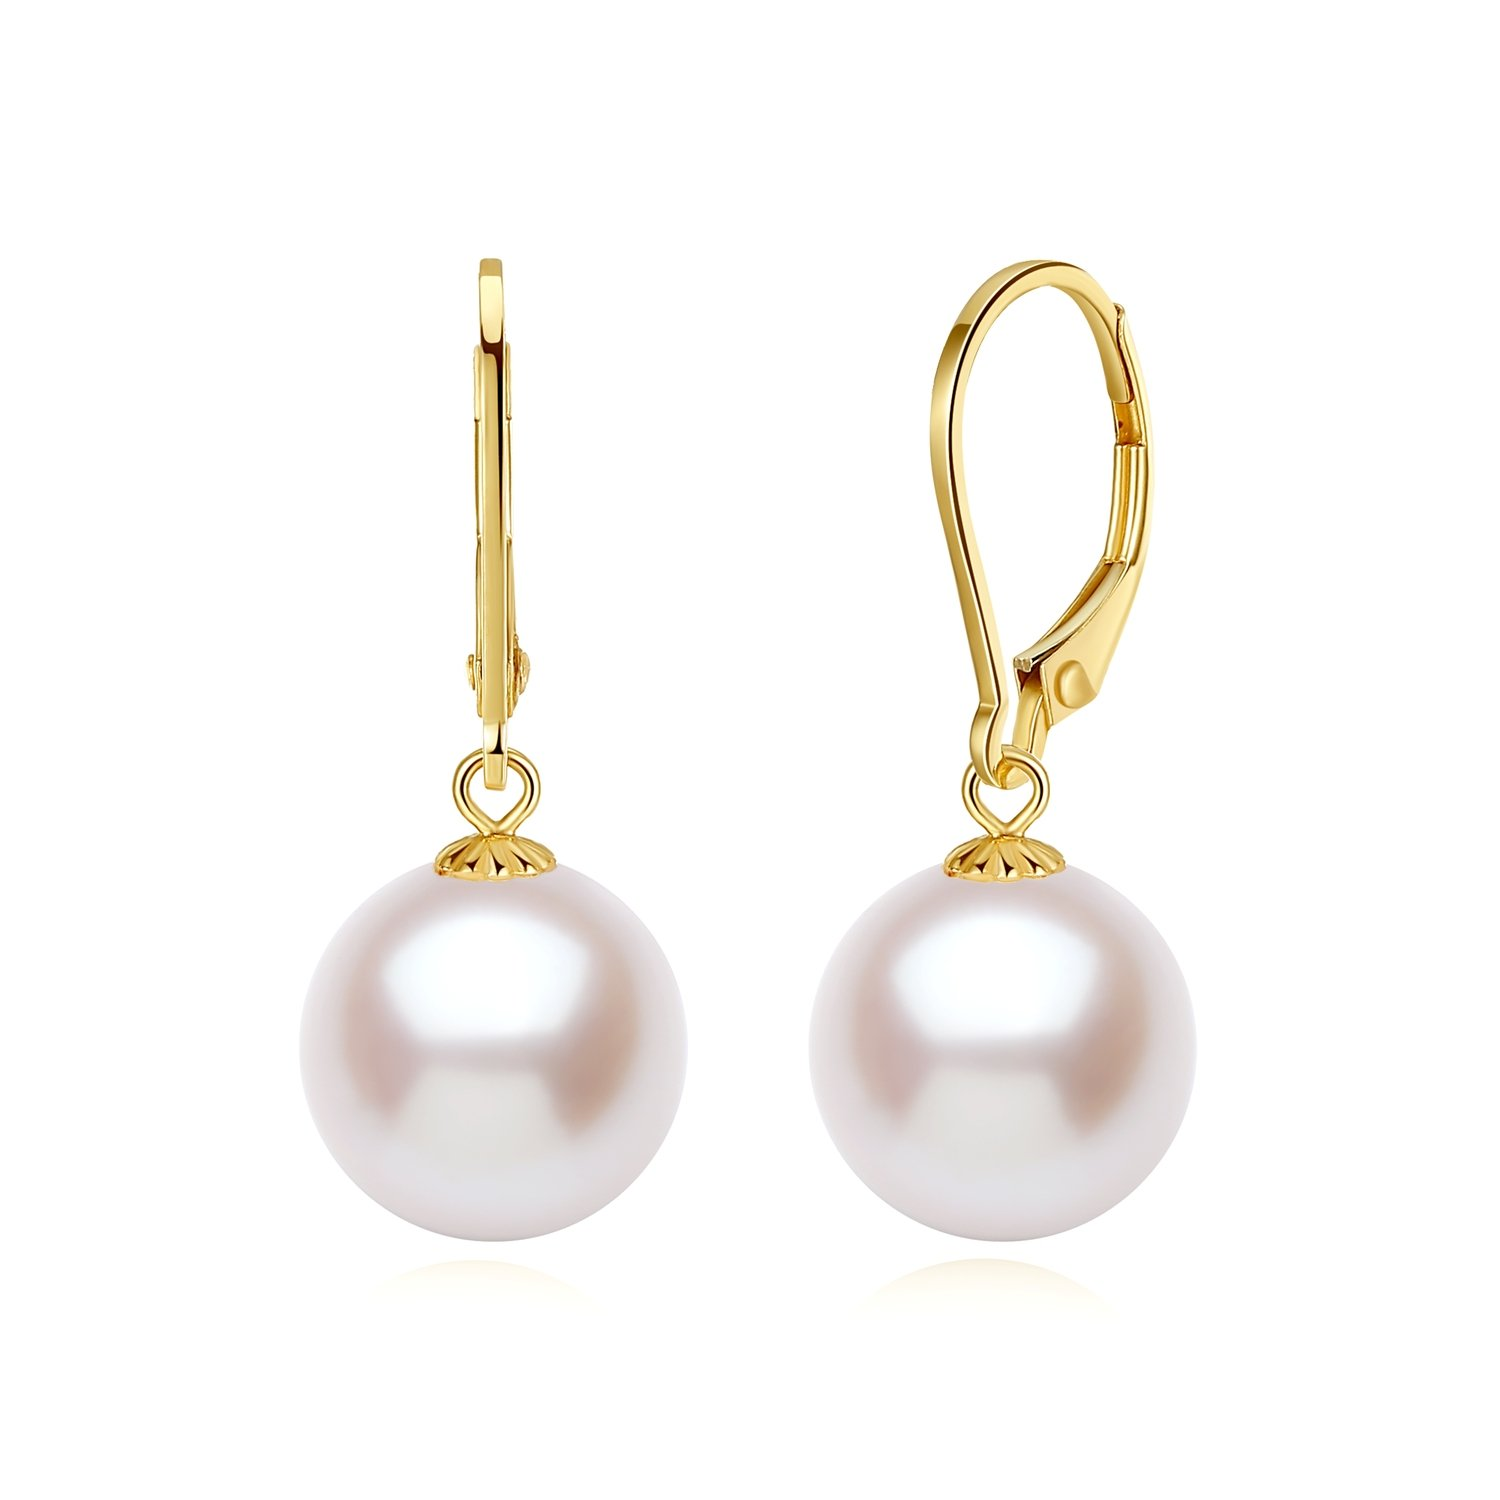 18K Yellow Gold Earring Freshwater Cultured White Round Pearl Dangle Earrings 10mm